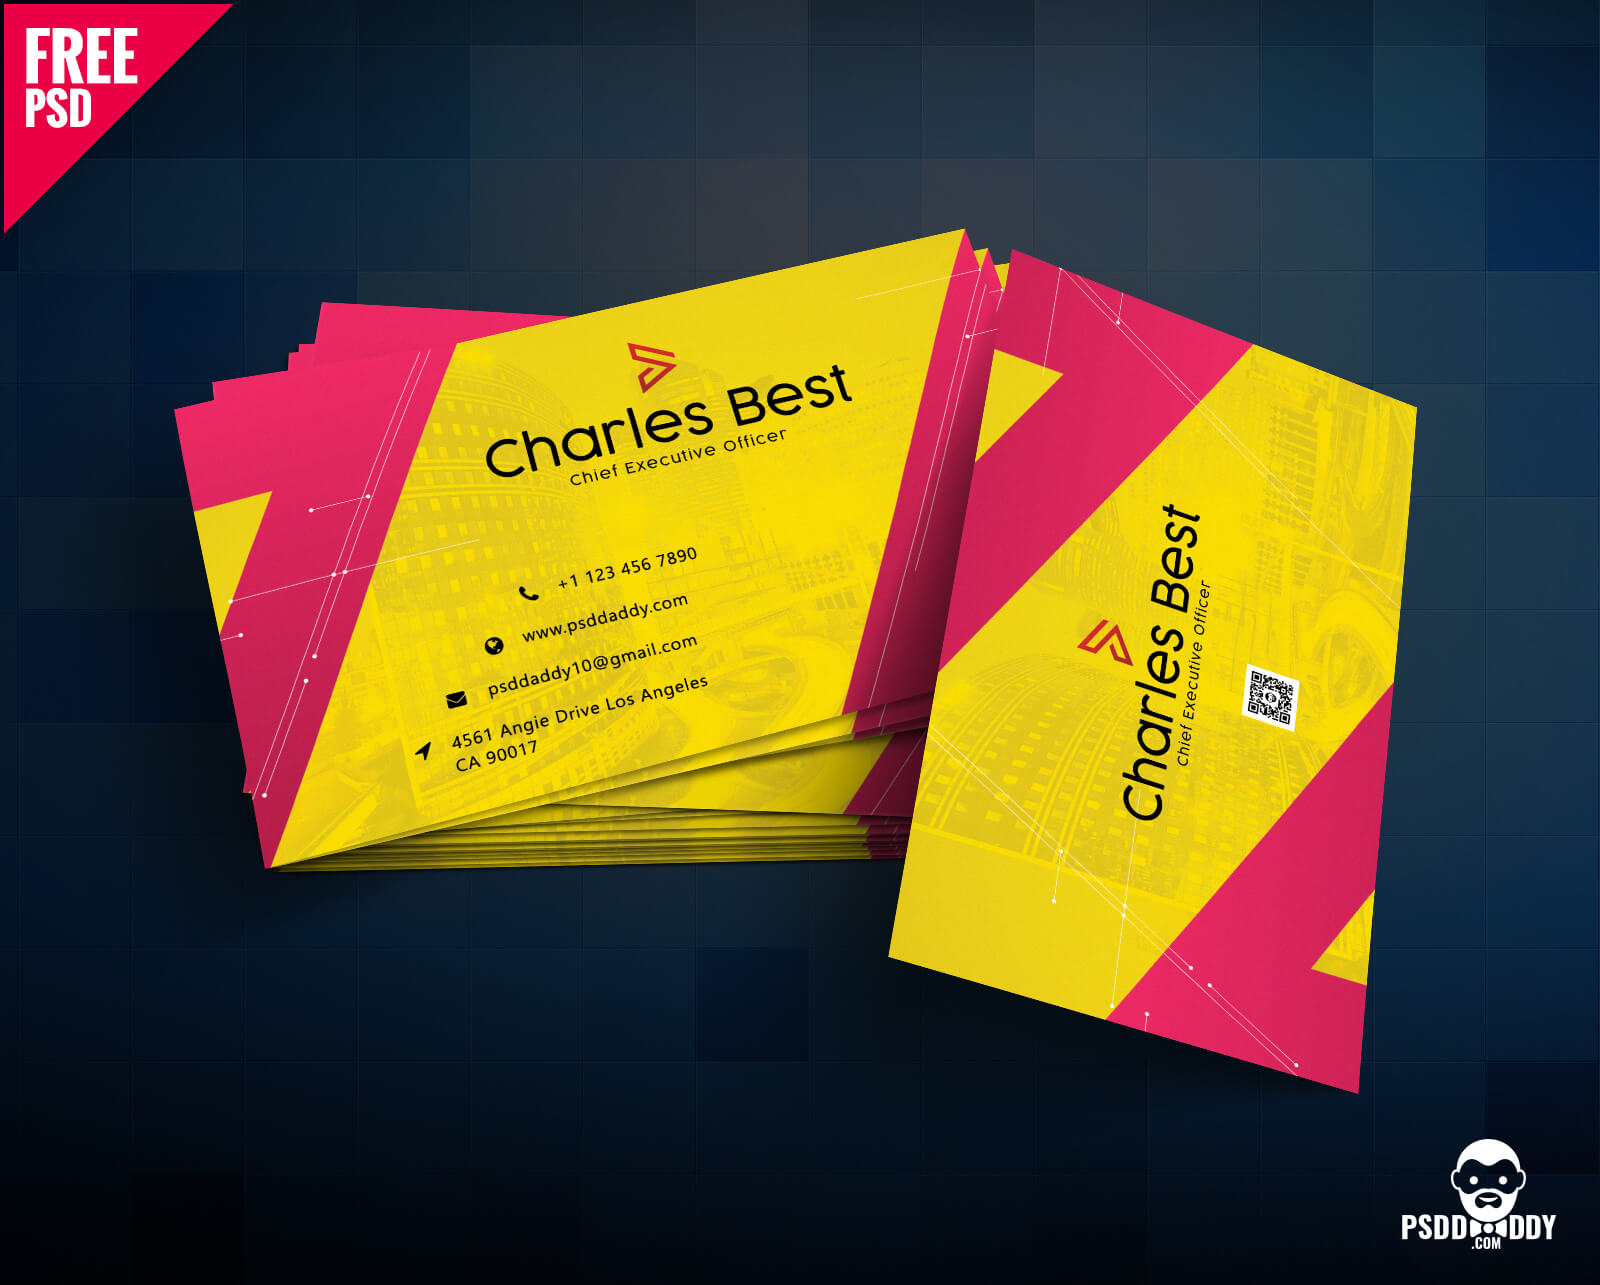 Download] Creative Business Card Free Psd | Psddaddy pertaining to Visiting Card Template Psd Free Download